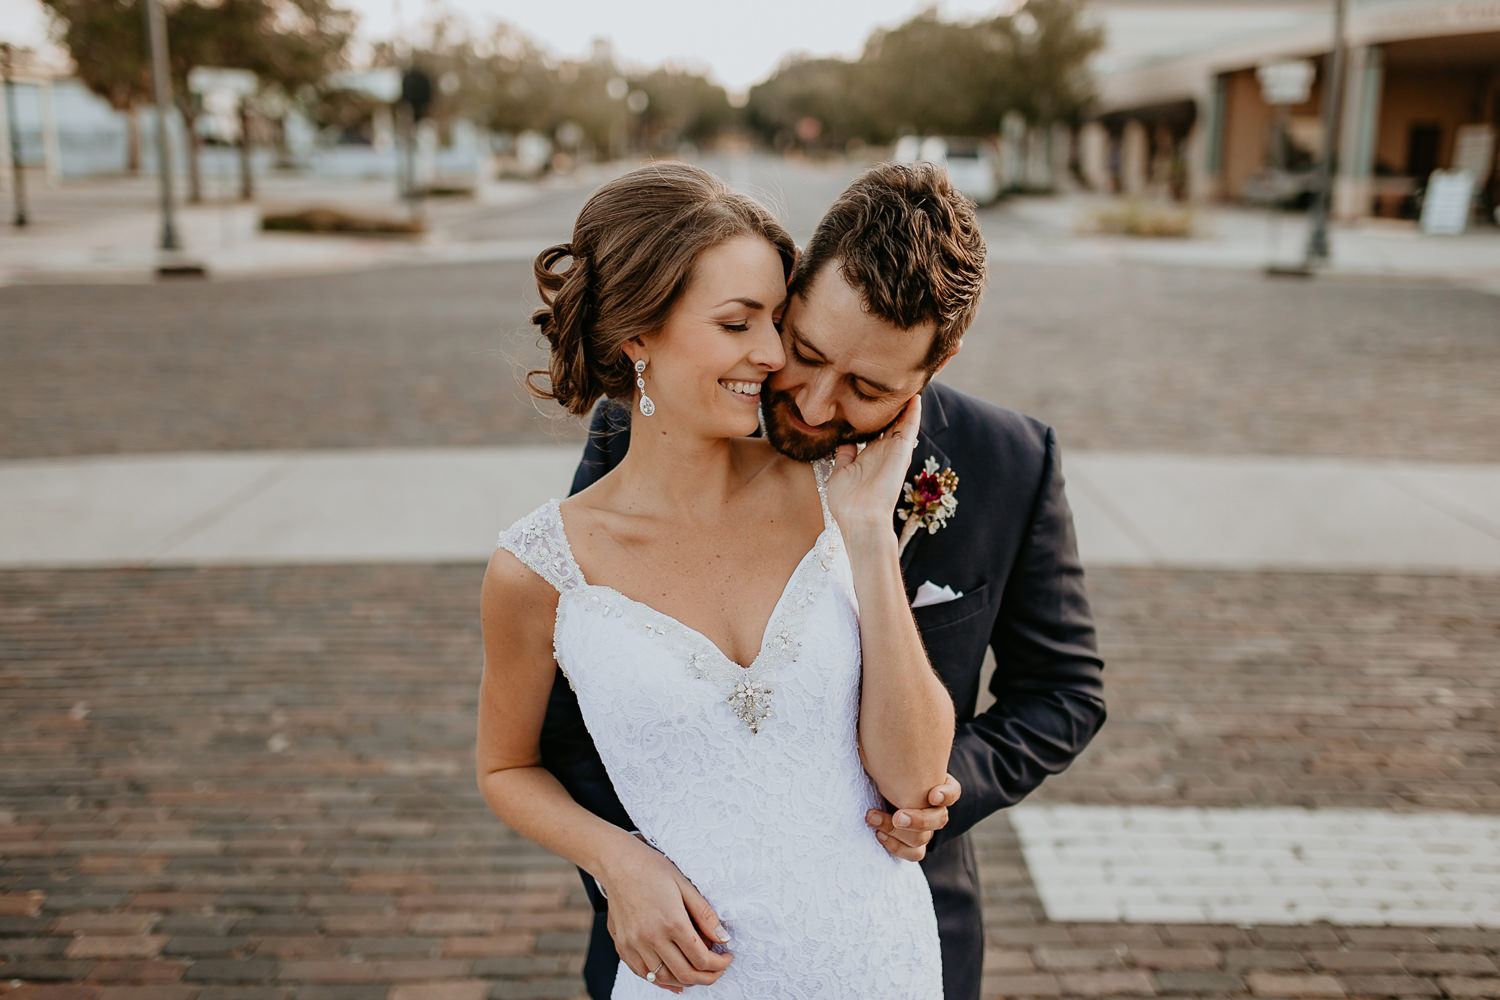 groom hugging bride from being her hand on his cheek on cobblestone road